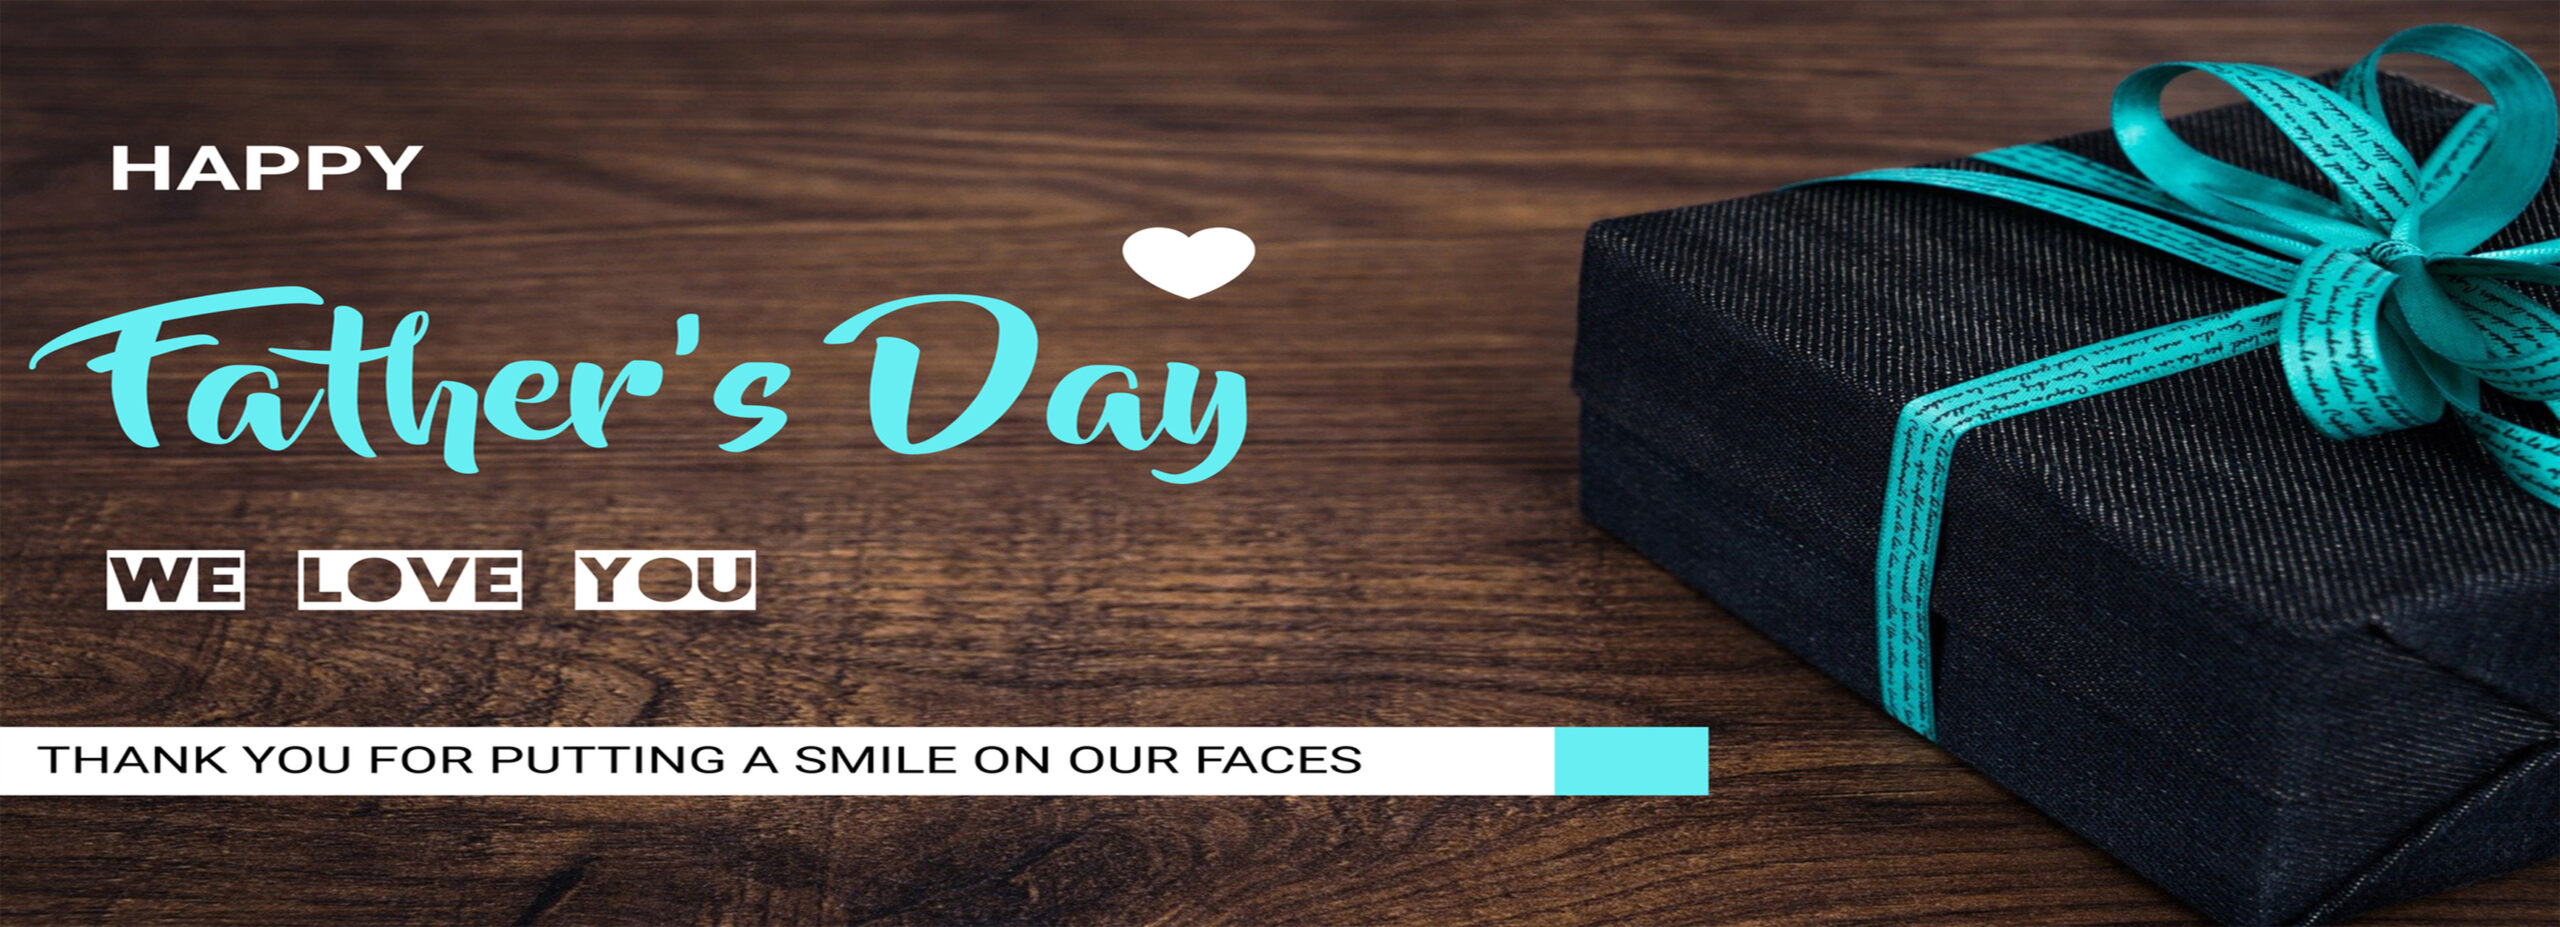 https://heavensentgreetingcards.com/wp-content/uploads/2021/05/FATHERS-DAY-BANNER-2-scaled.jpg